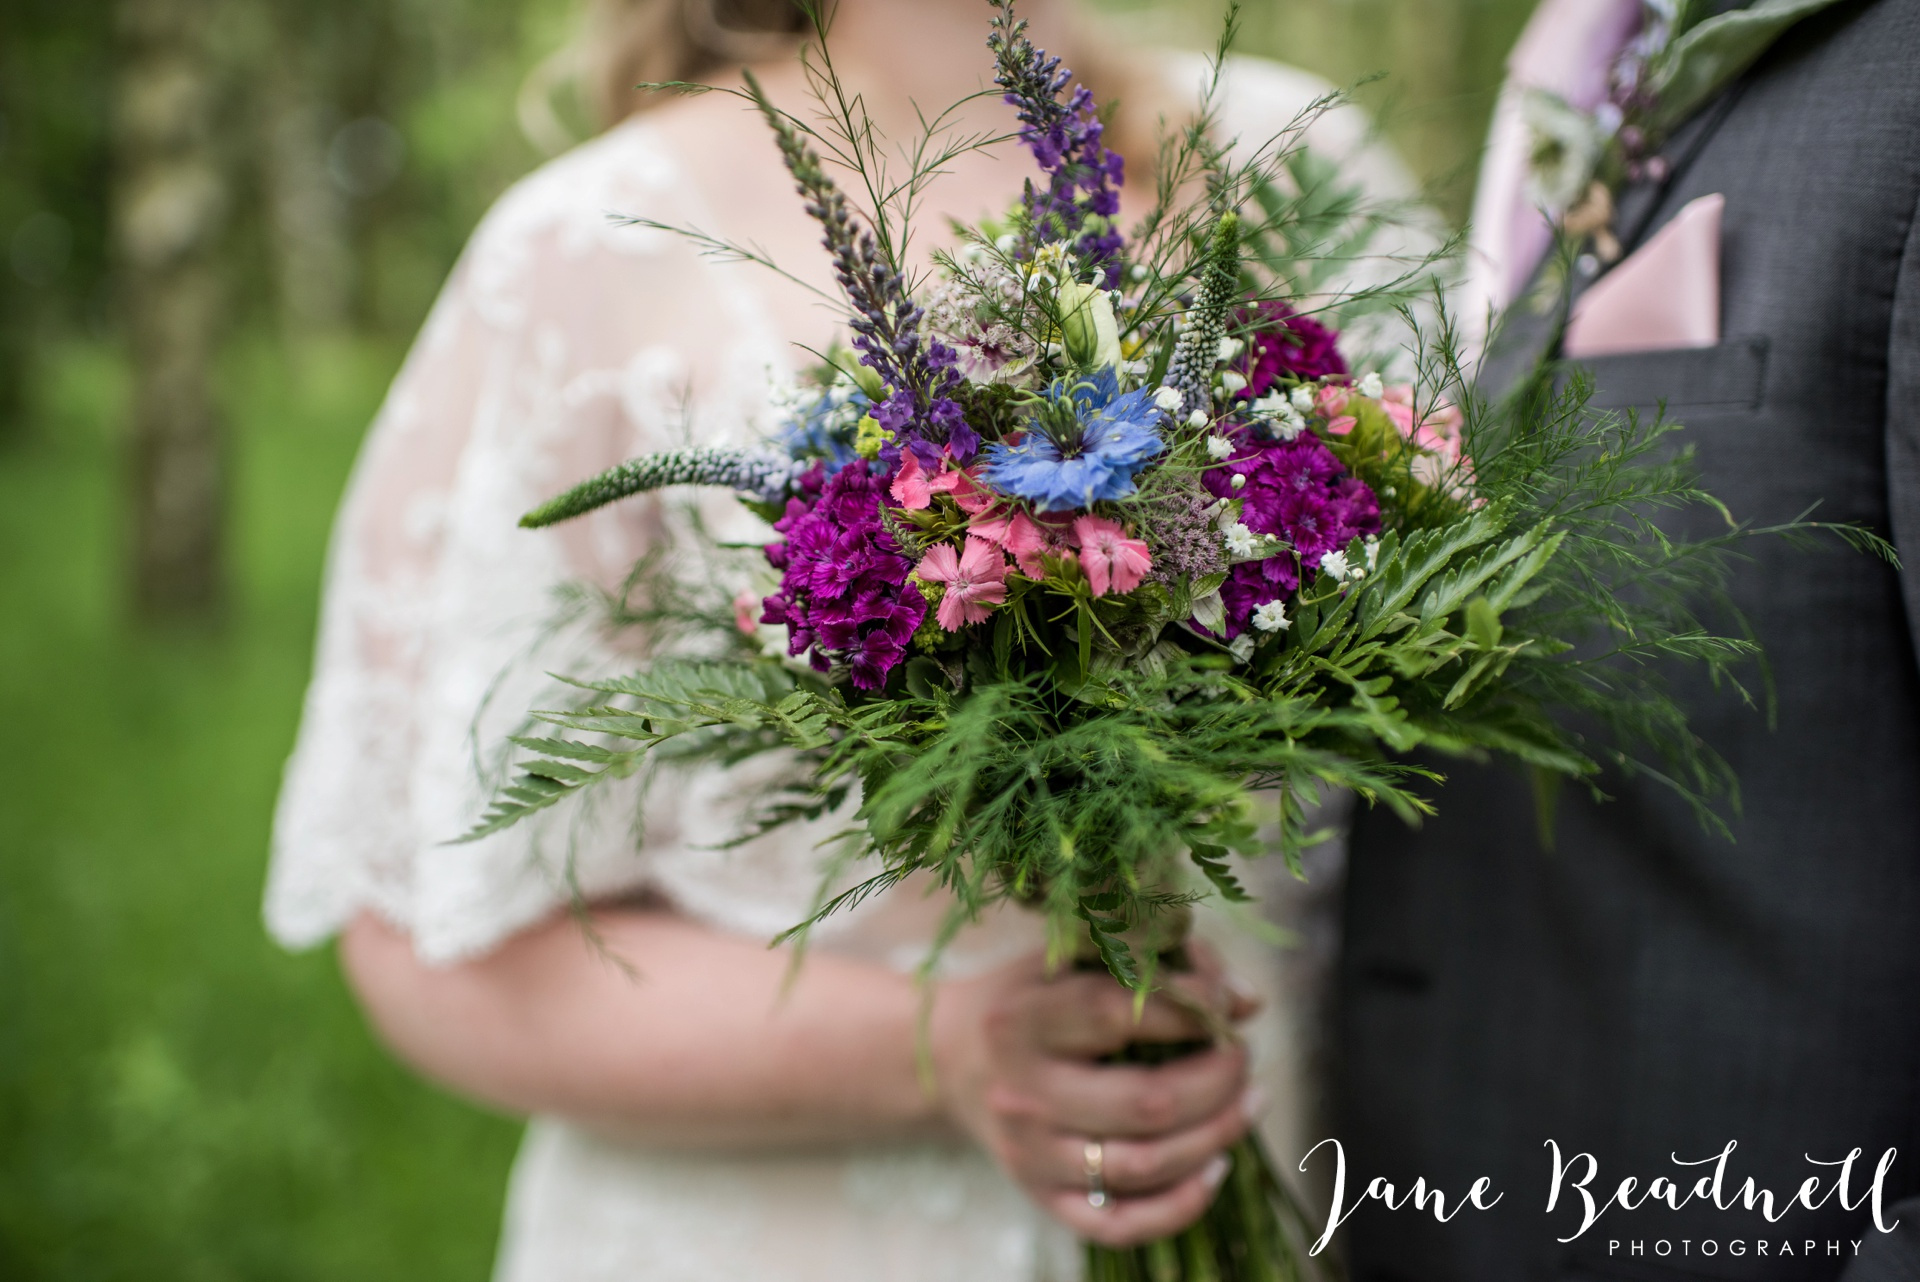 Yorkshire Wedding Photography the cheerful Chilli Barn Wedding by Jane Beadnell Photography_0137